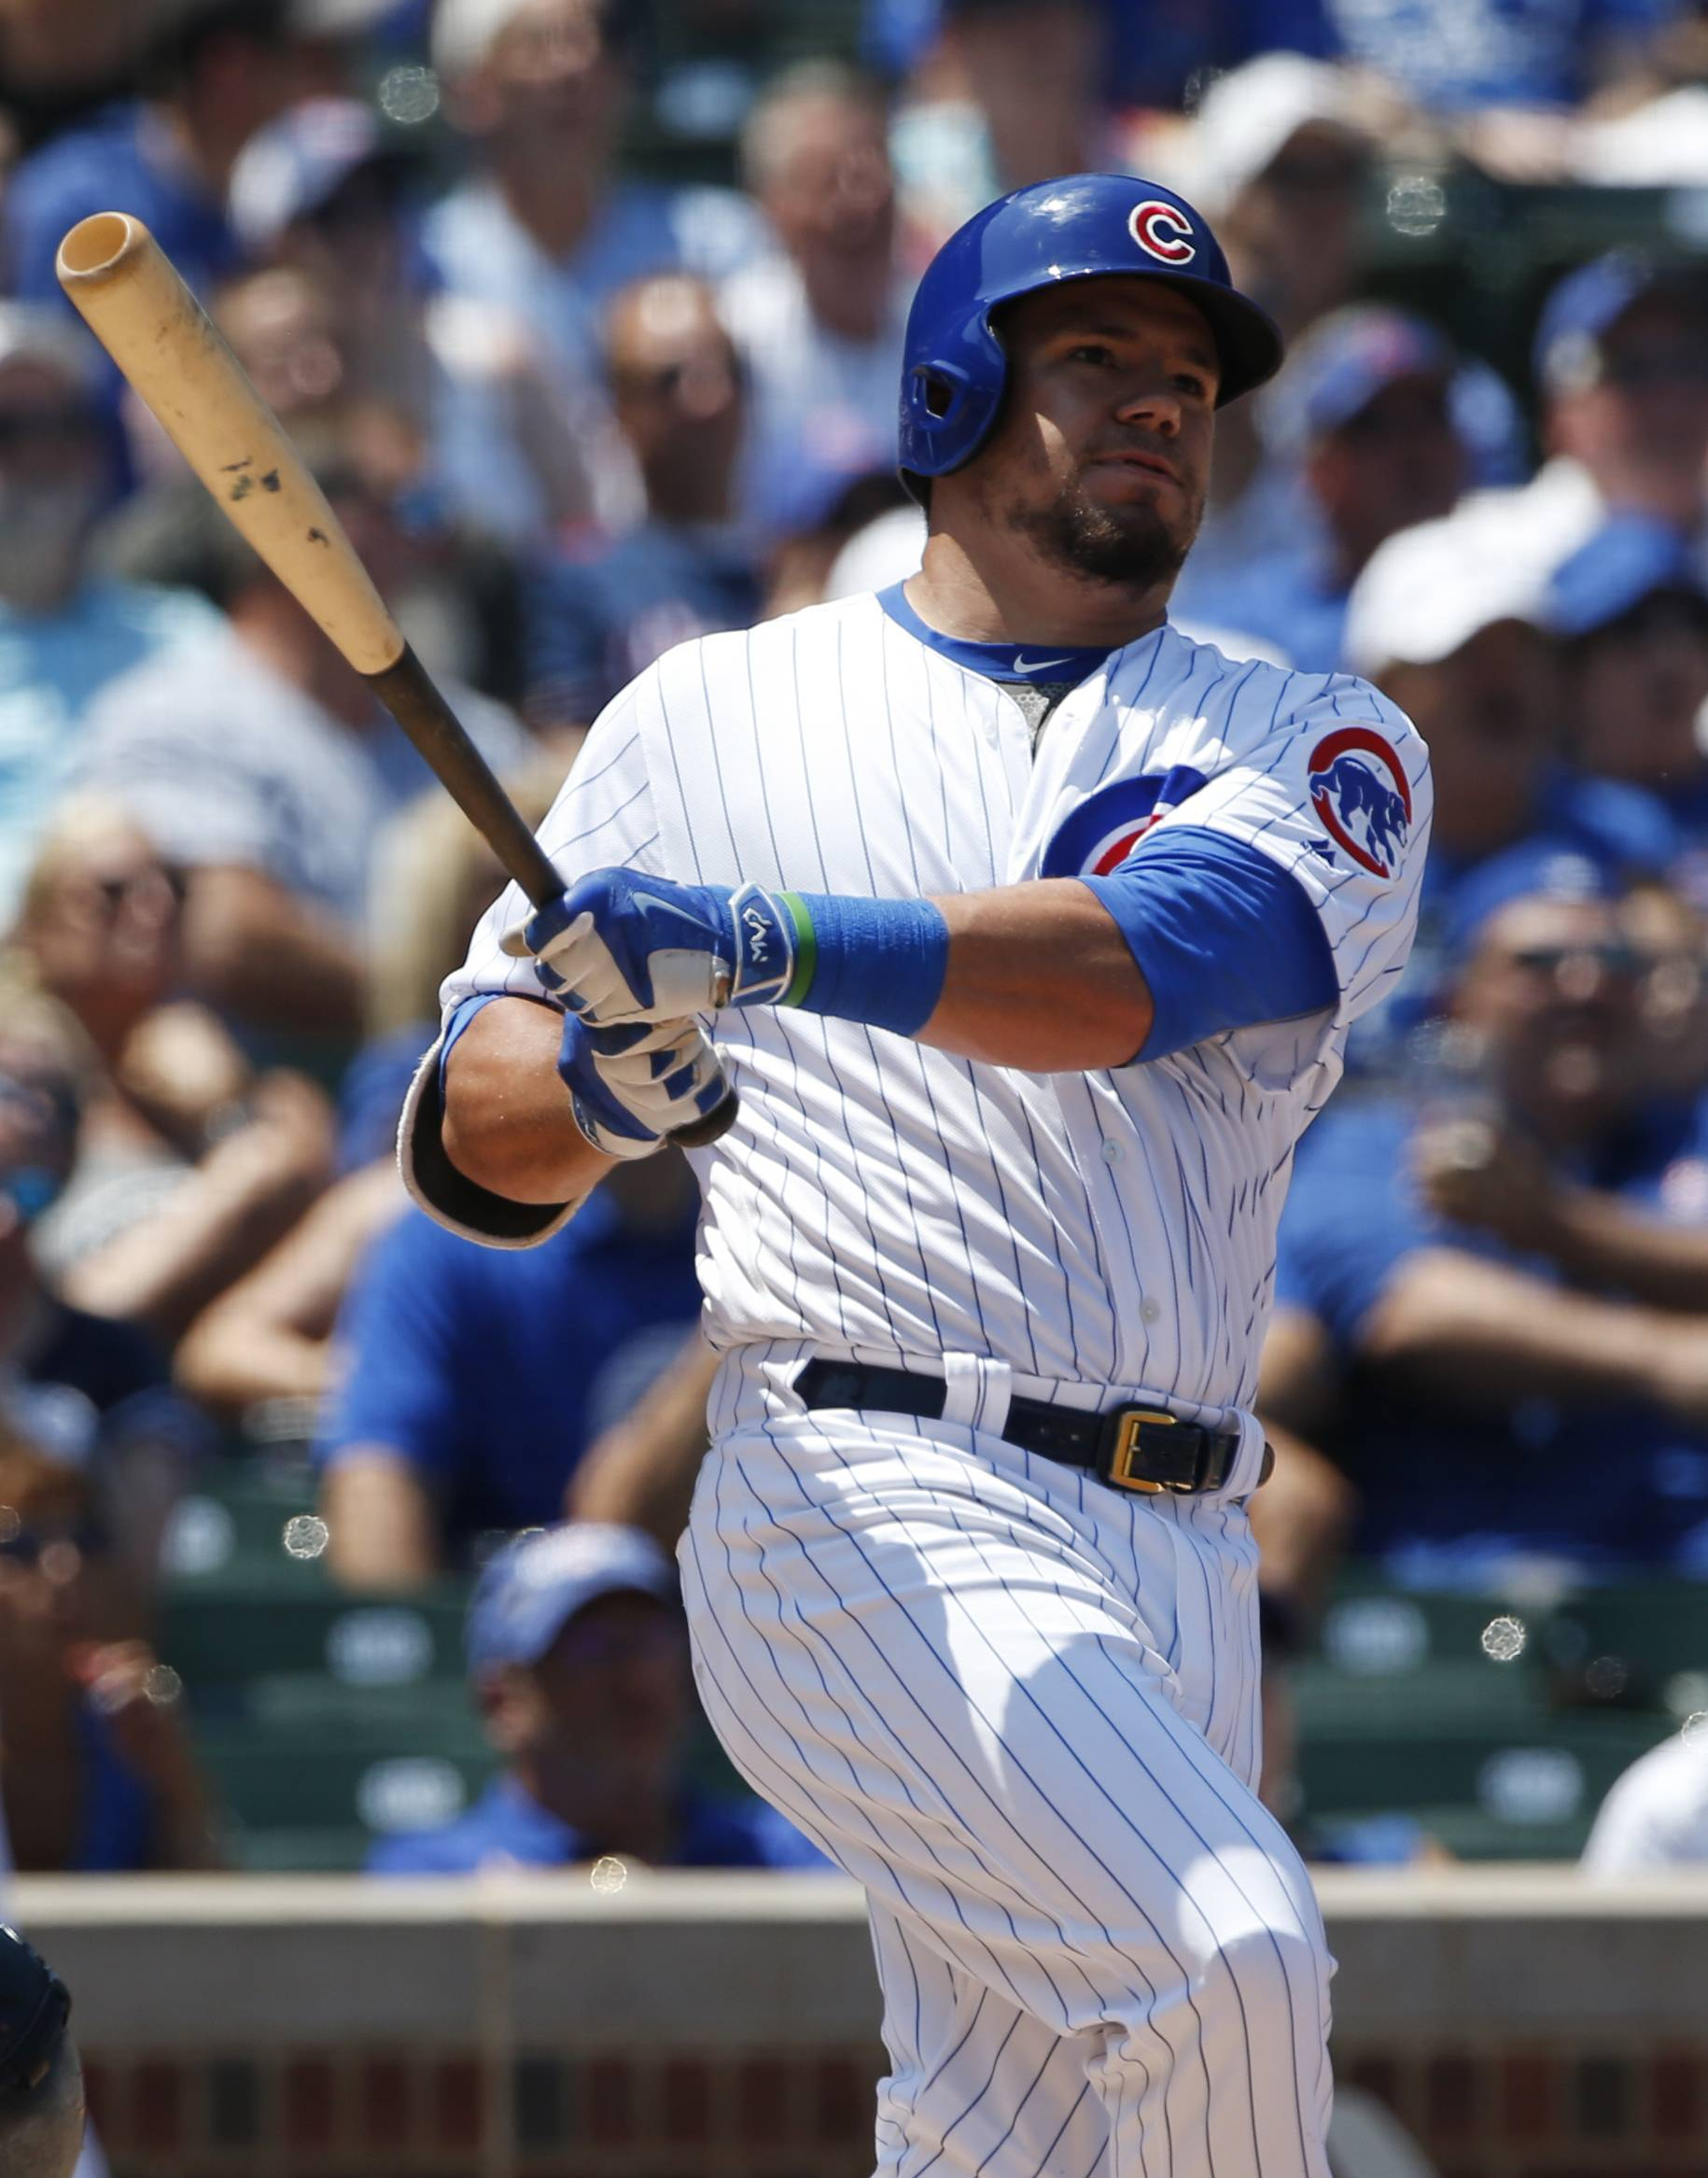 Kyle Schwarber will be the Cubs designated hitter against the White Sox for Wednesday night's game at Guaranteed Rate Field. John Jay replaces Schwarber in left field.